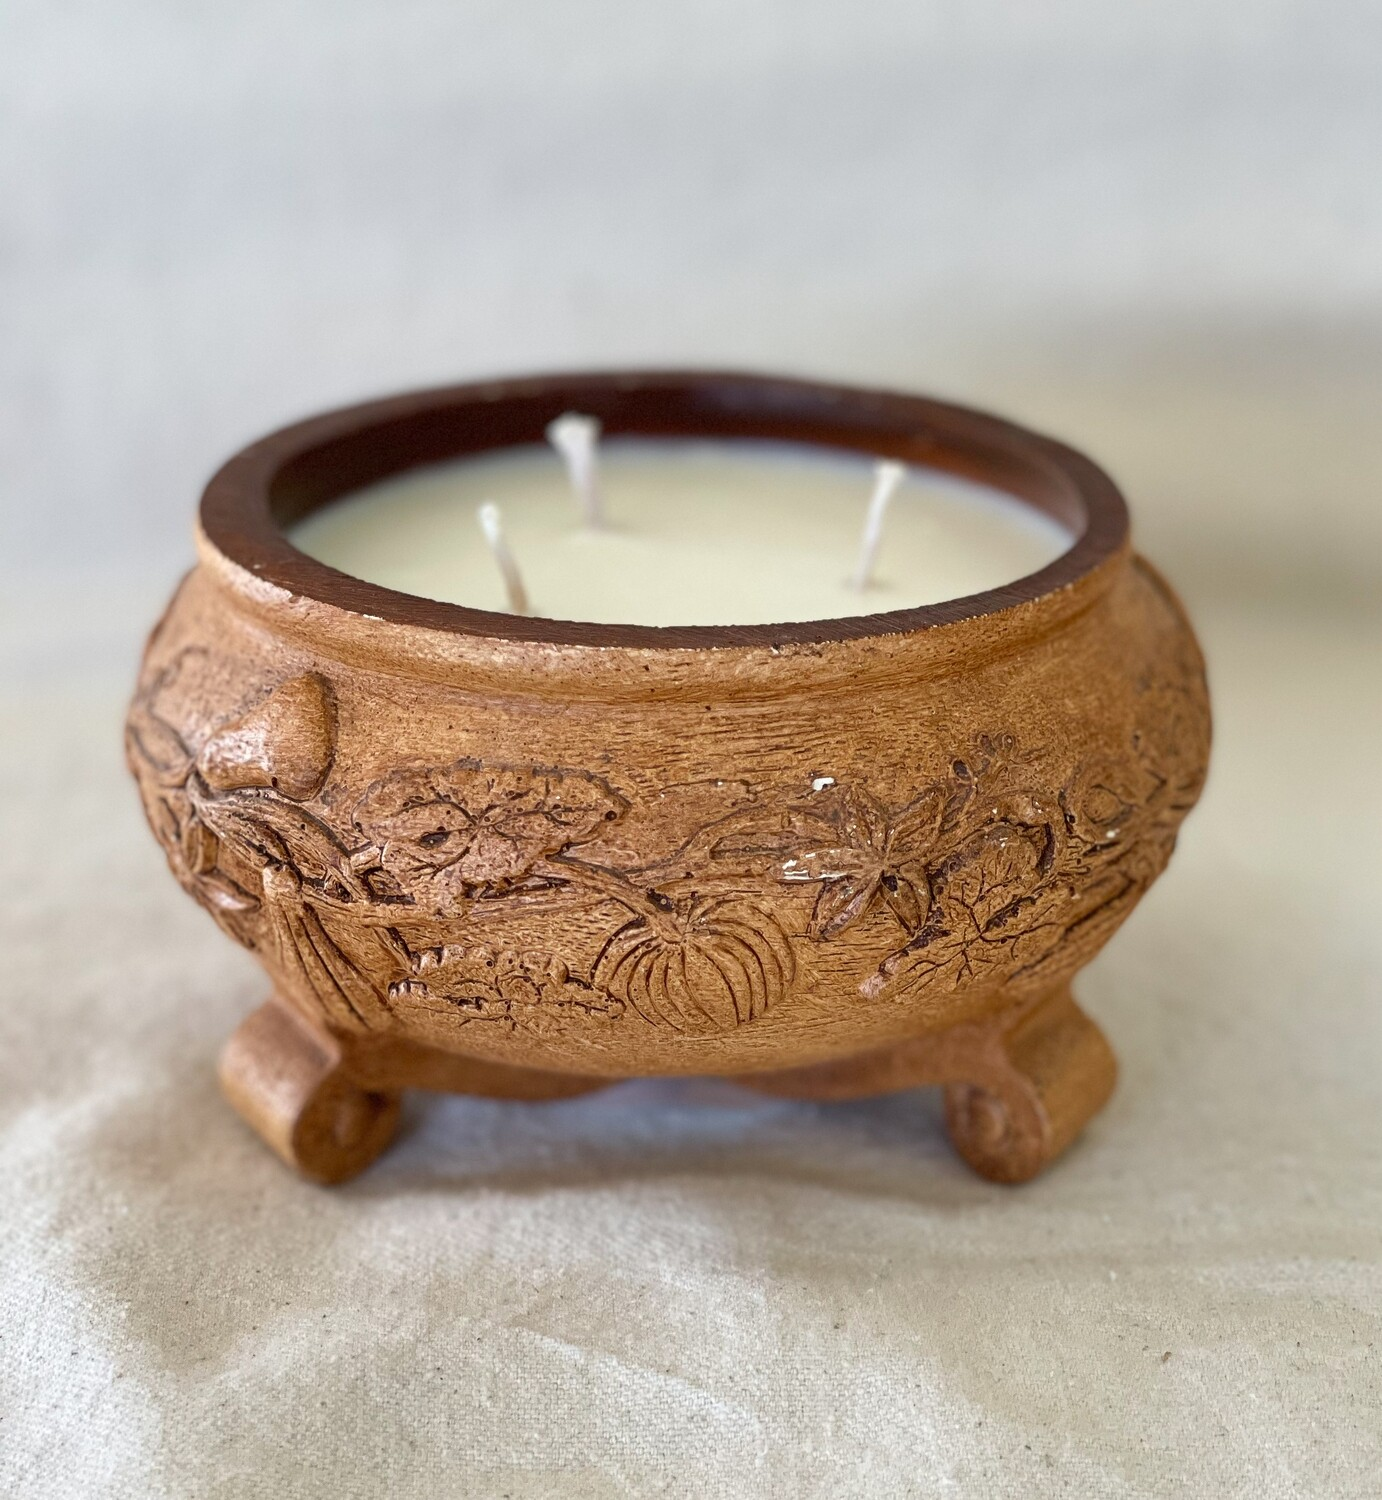 Bamboo & Coconut Footed Bowl Candle 16oz